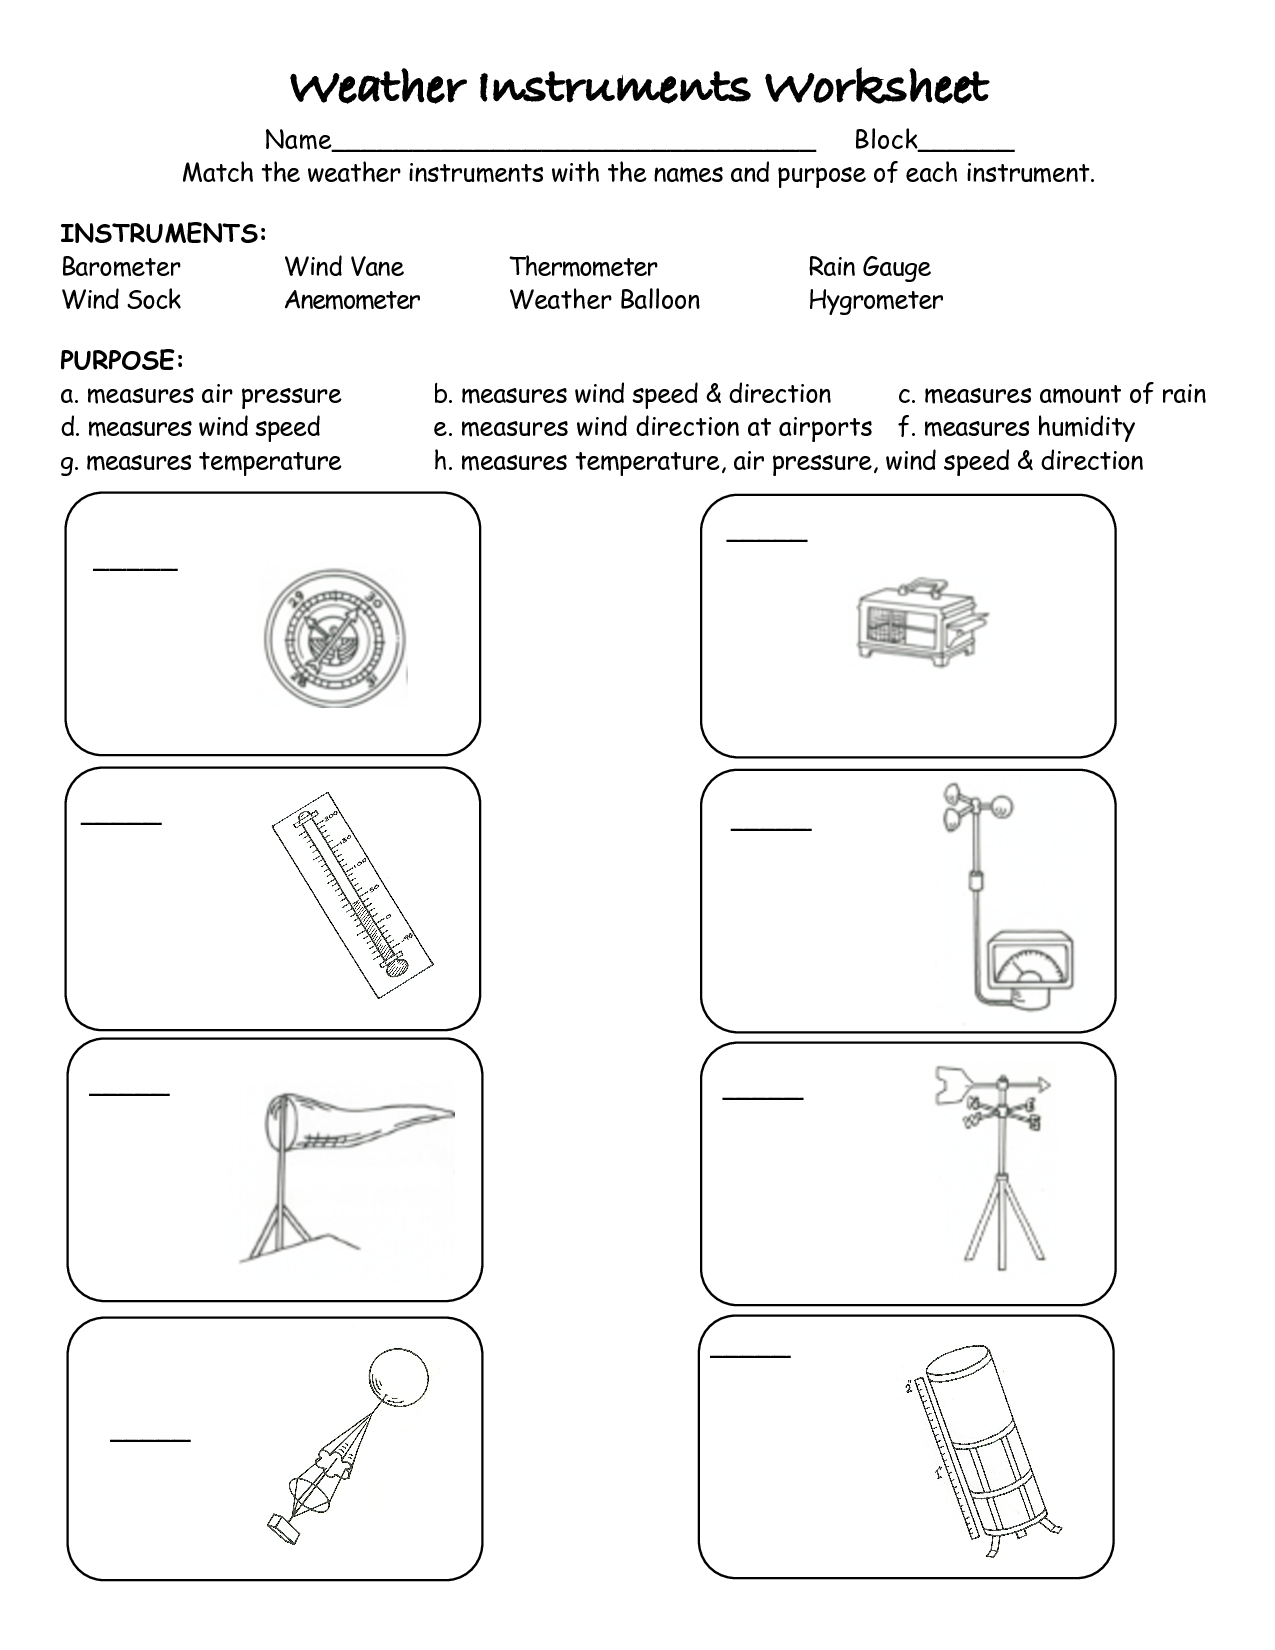 worksheets weather instruments weather worksheets pdf recipes to cook weather worksheets. Black Bedroom Furniture Sets. Home Design Ideas